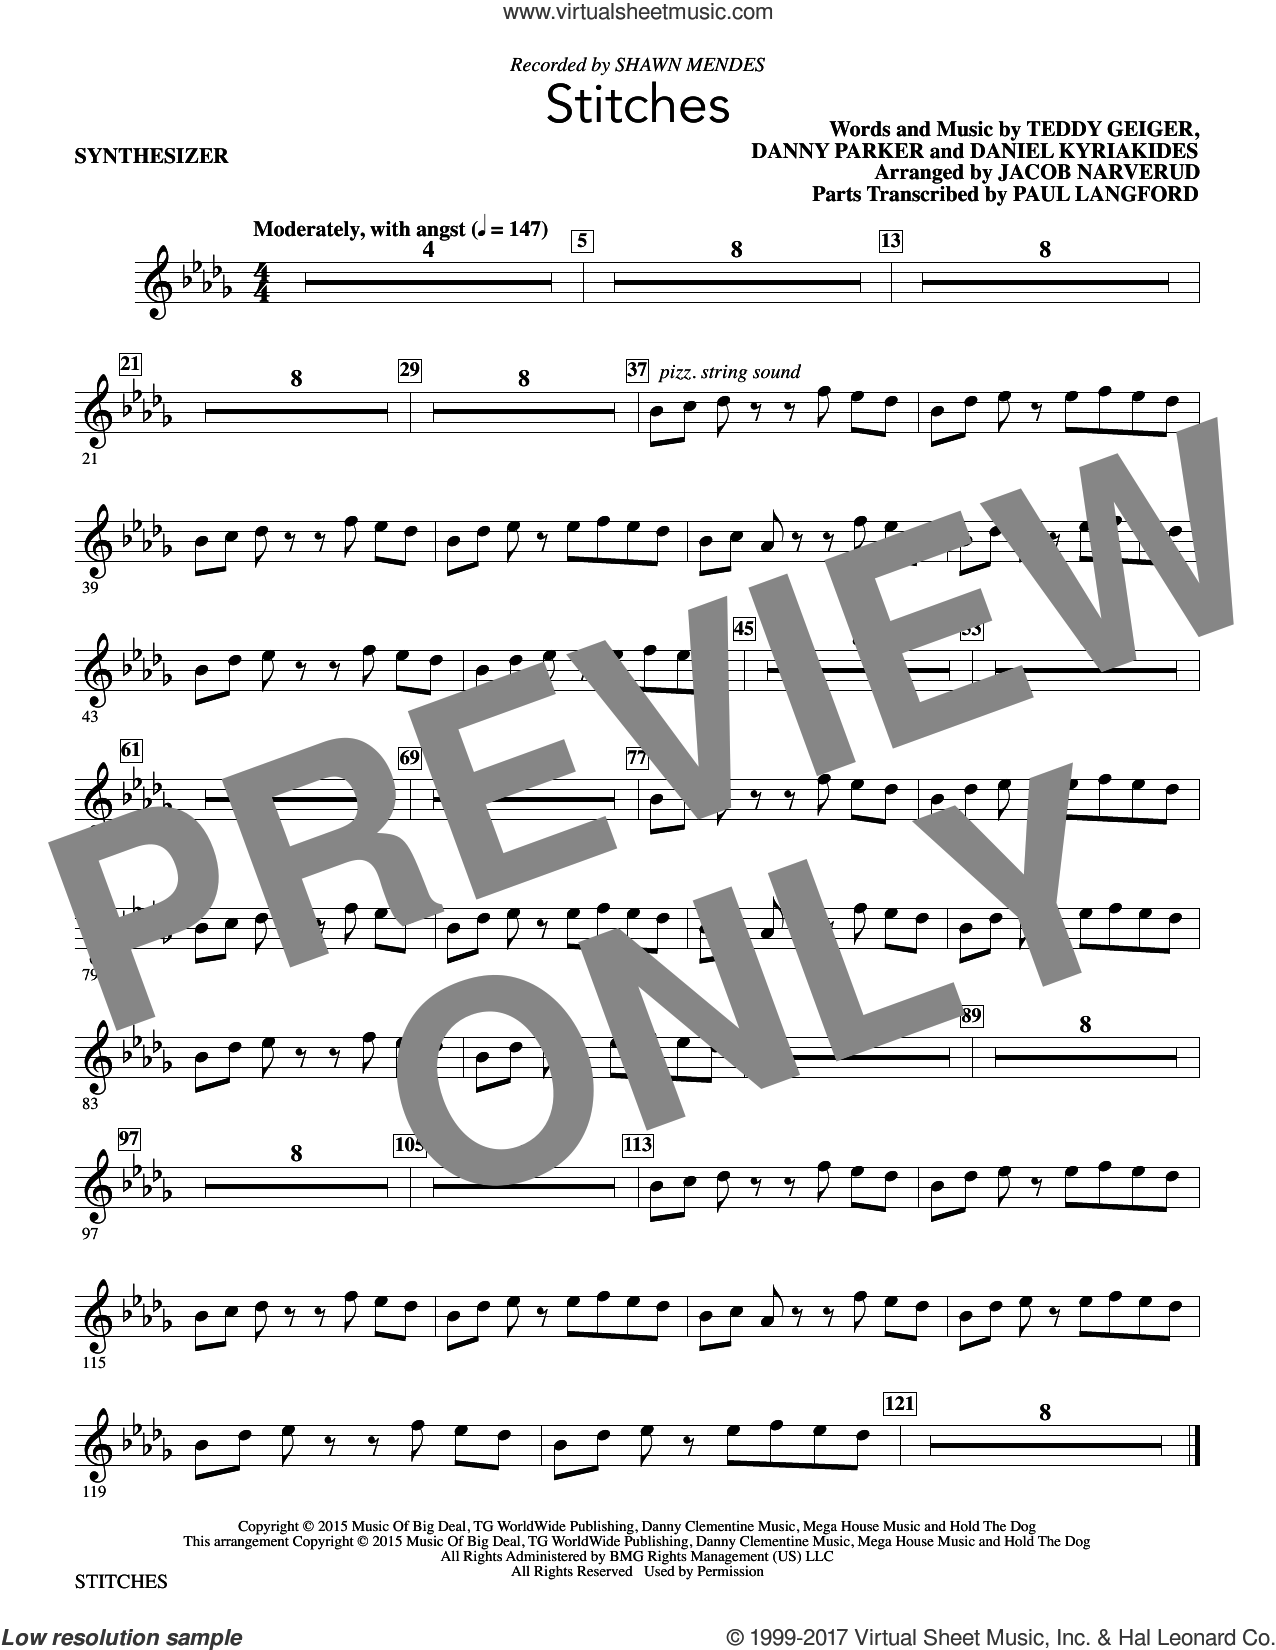 Stitches (complete set of parts) sheet music for orchestra/band by Shawn Mendes, Daniel Kyriakides, Danny Parker, Jacob Narverud and Teddy Geiger, intermediate